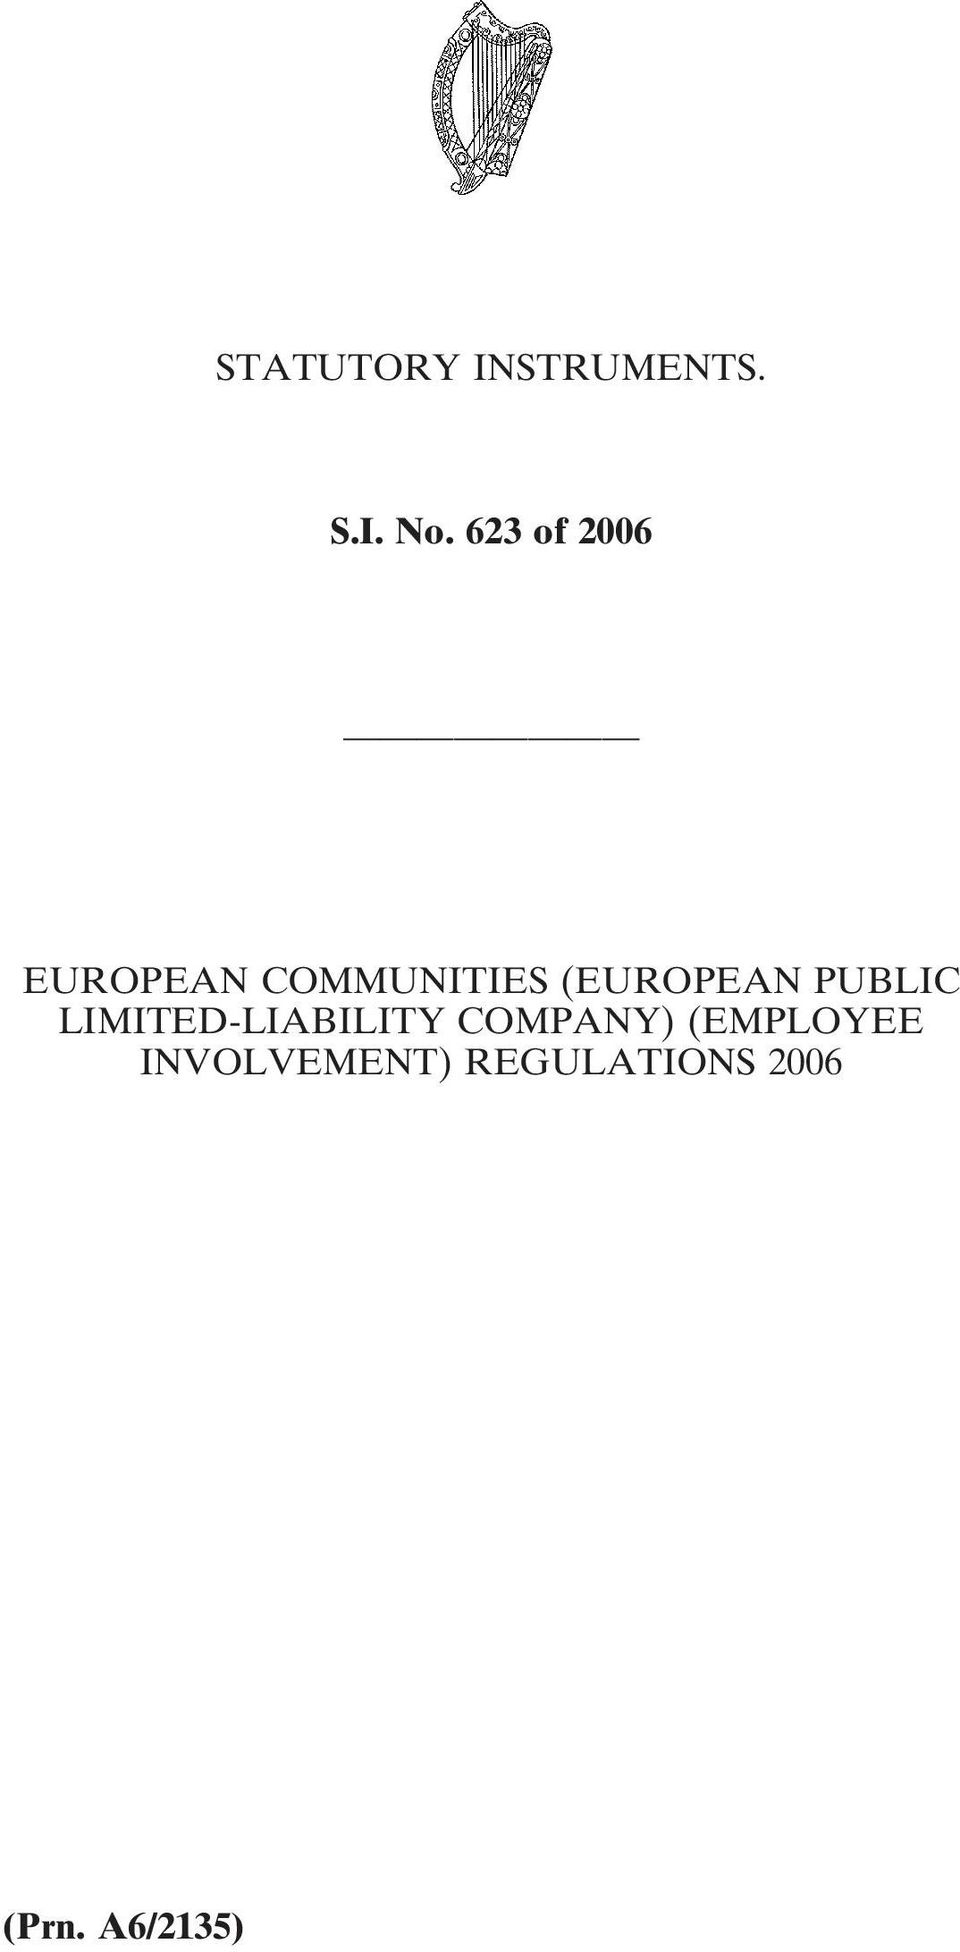 (EUROPEAN PUBLIC LIMITED-LIABILITY